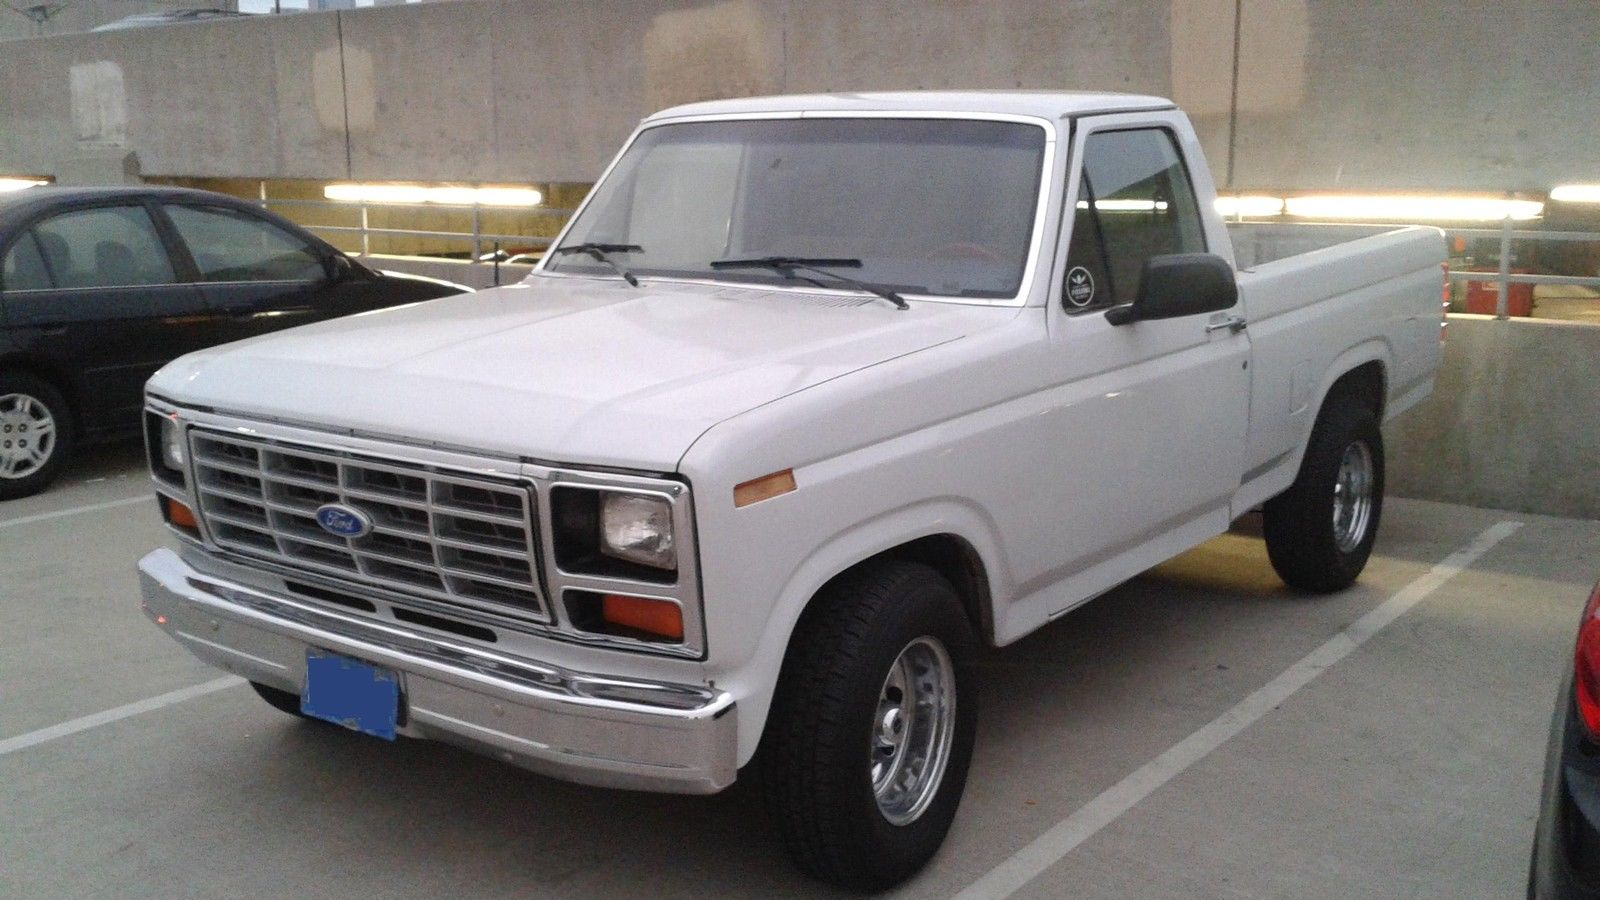 1985 ford f150 single cab short bed classic ford f 150 1985 for sale. Black Bedroom Furniture Sets. Home Design Ideas